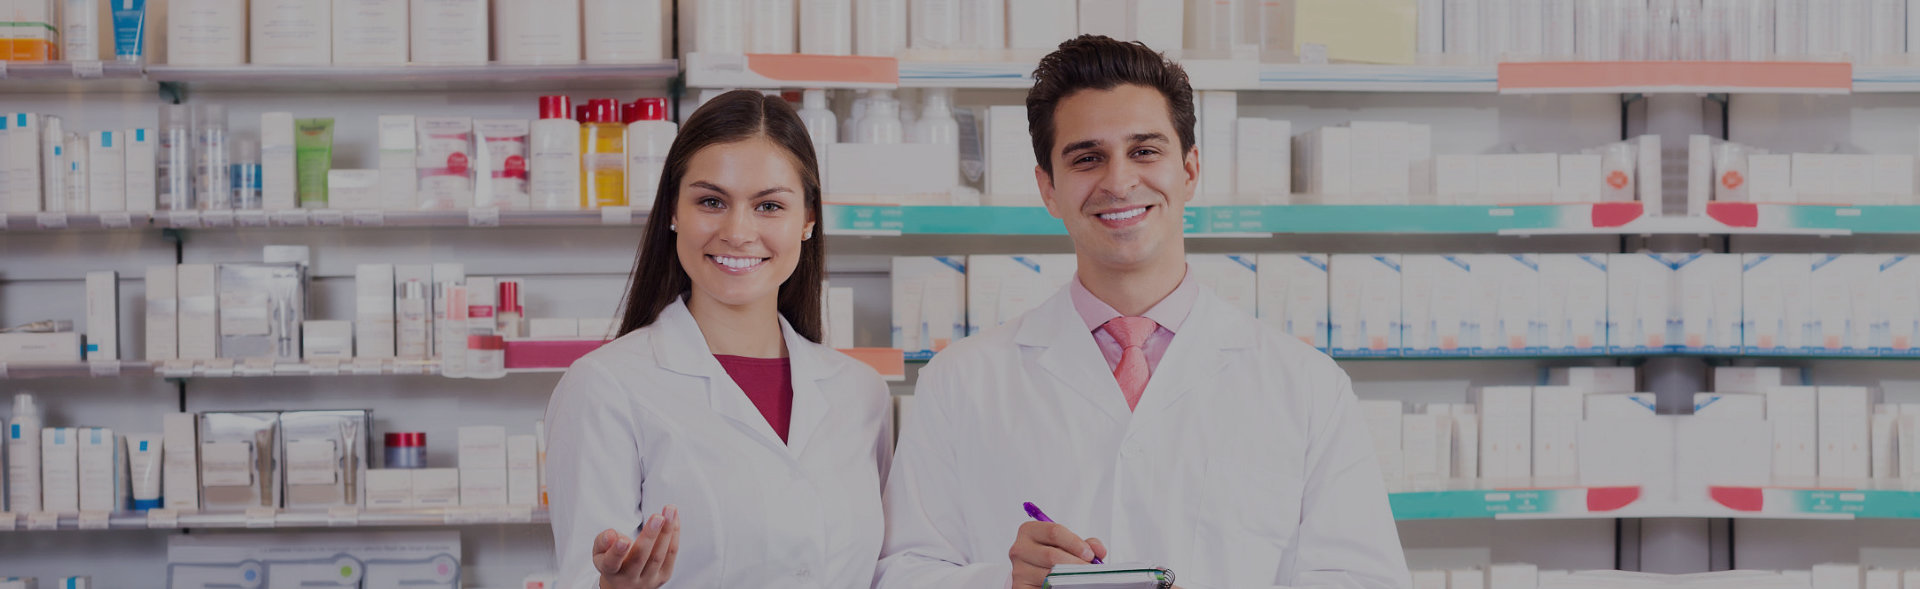 Male and female pharmacist